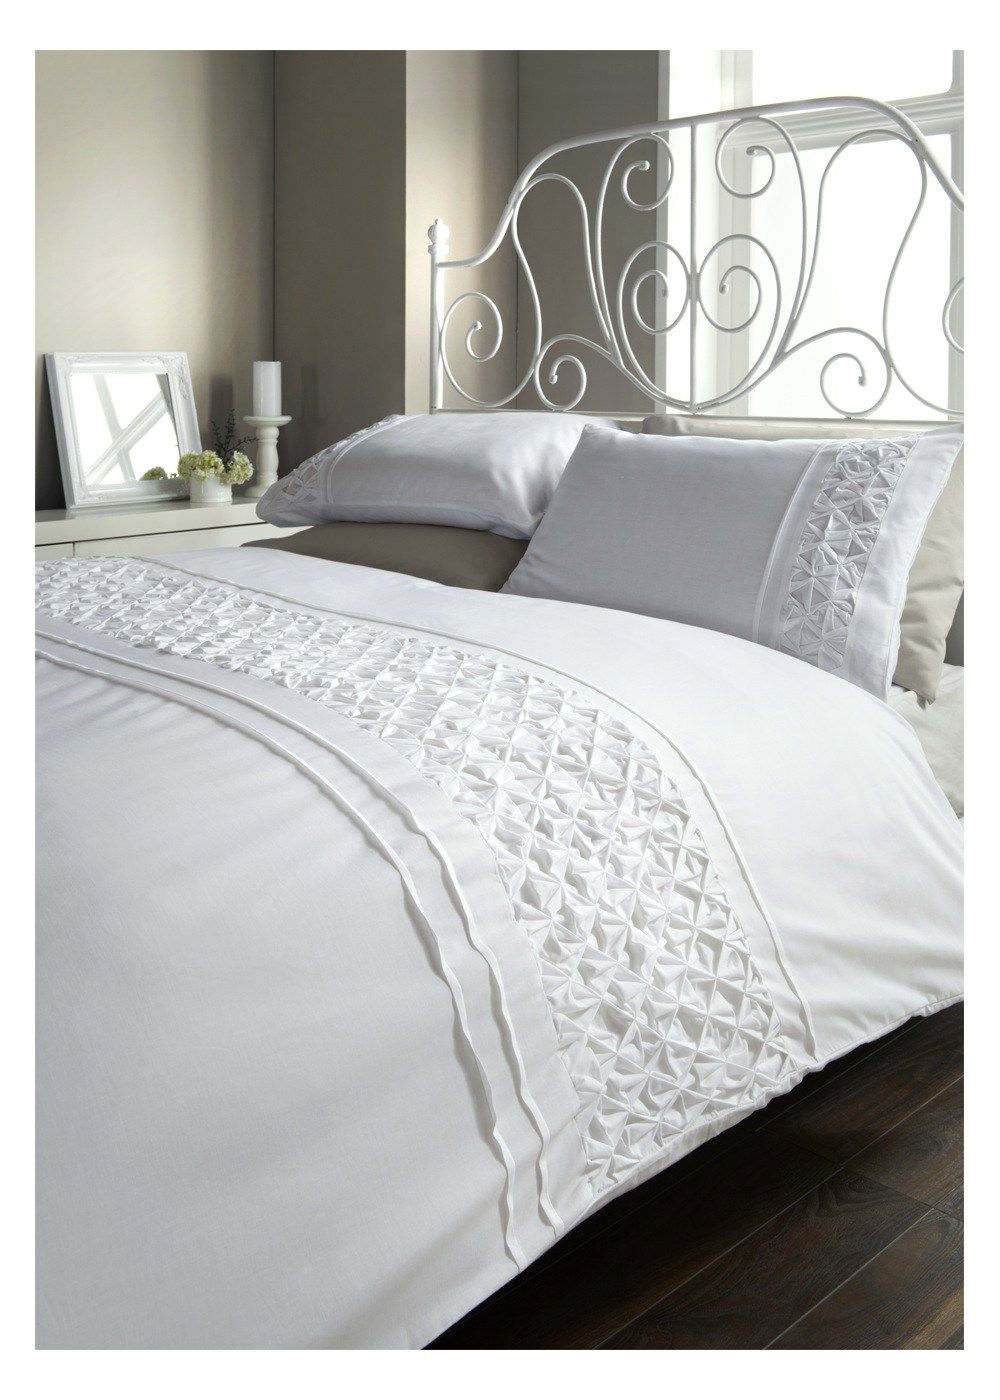 duvet glam decor ruffle inspiration bedding canopy and products cover ruched crane ruffles soft bedroom the vienna white